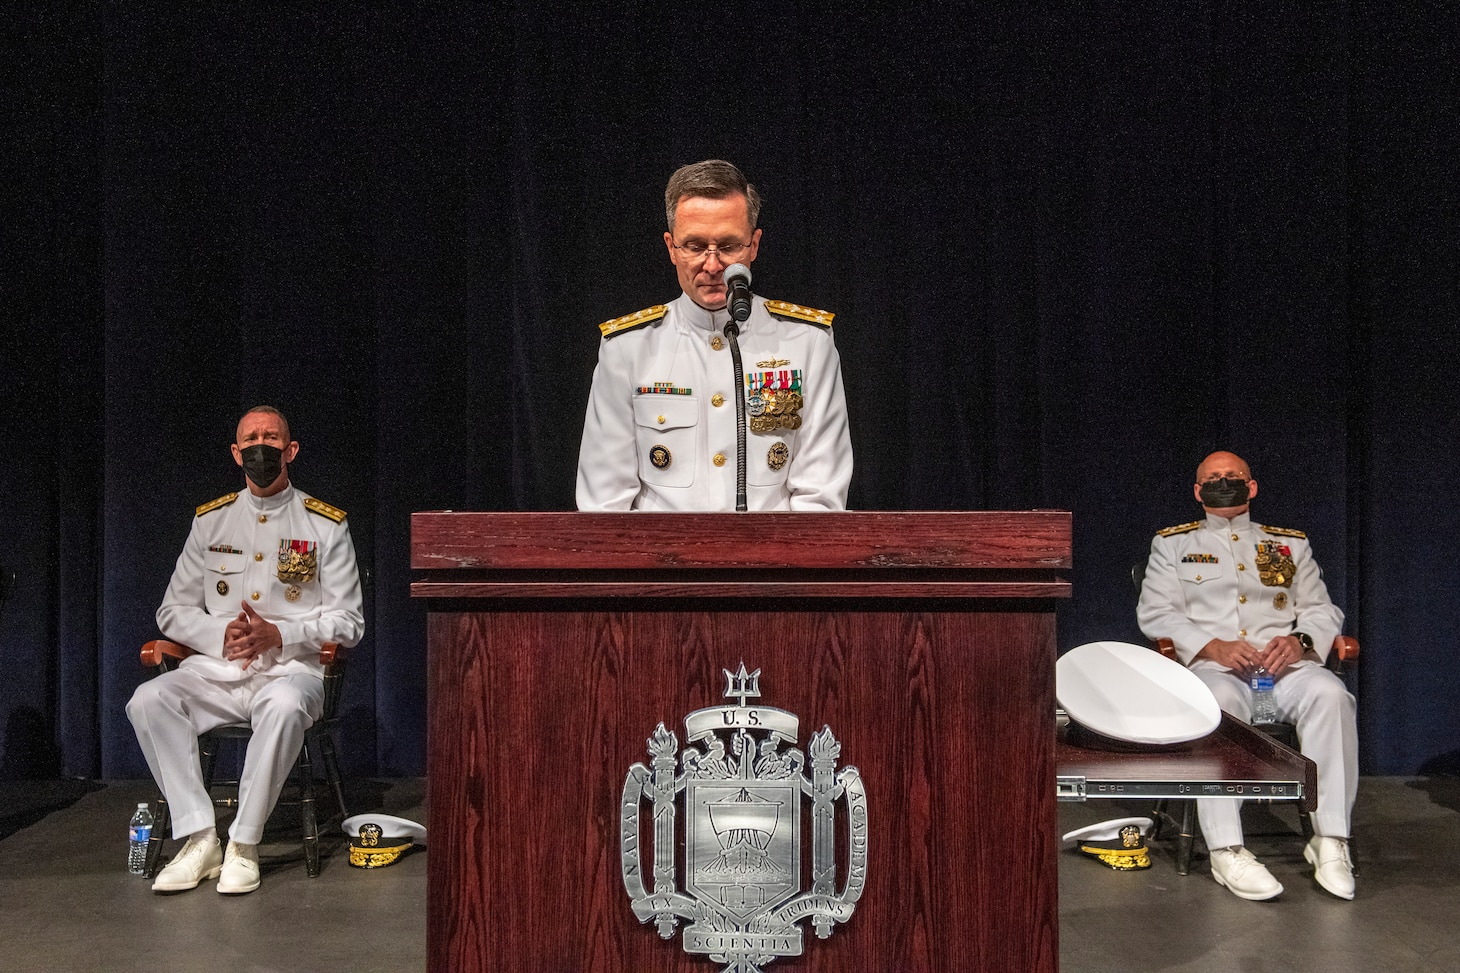 """Vice Adm. Darse """"Del"""" E. Crandall delivers remarks during a change of office ceremony at the U.S. Naval Academy in which he relieved Vice Adm. John G. Hannink and became the 45th Judge Advocate of the Navy."""